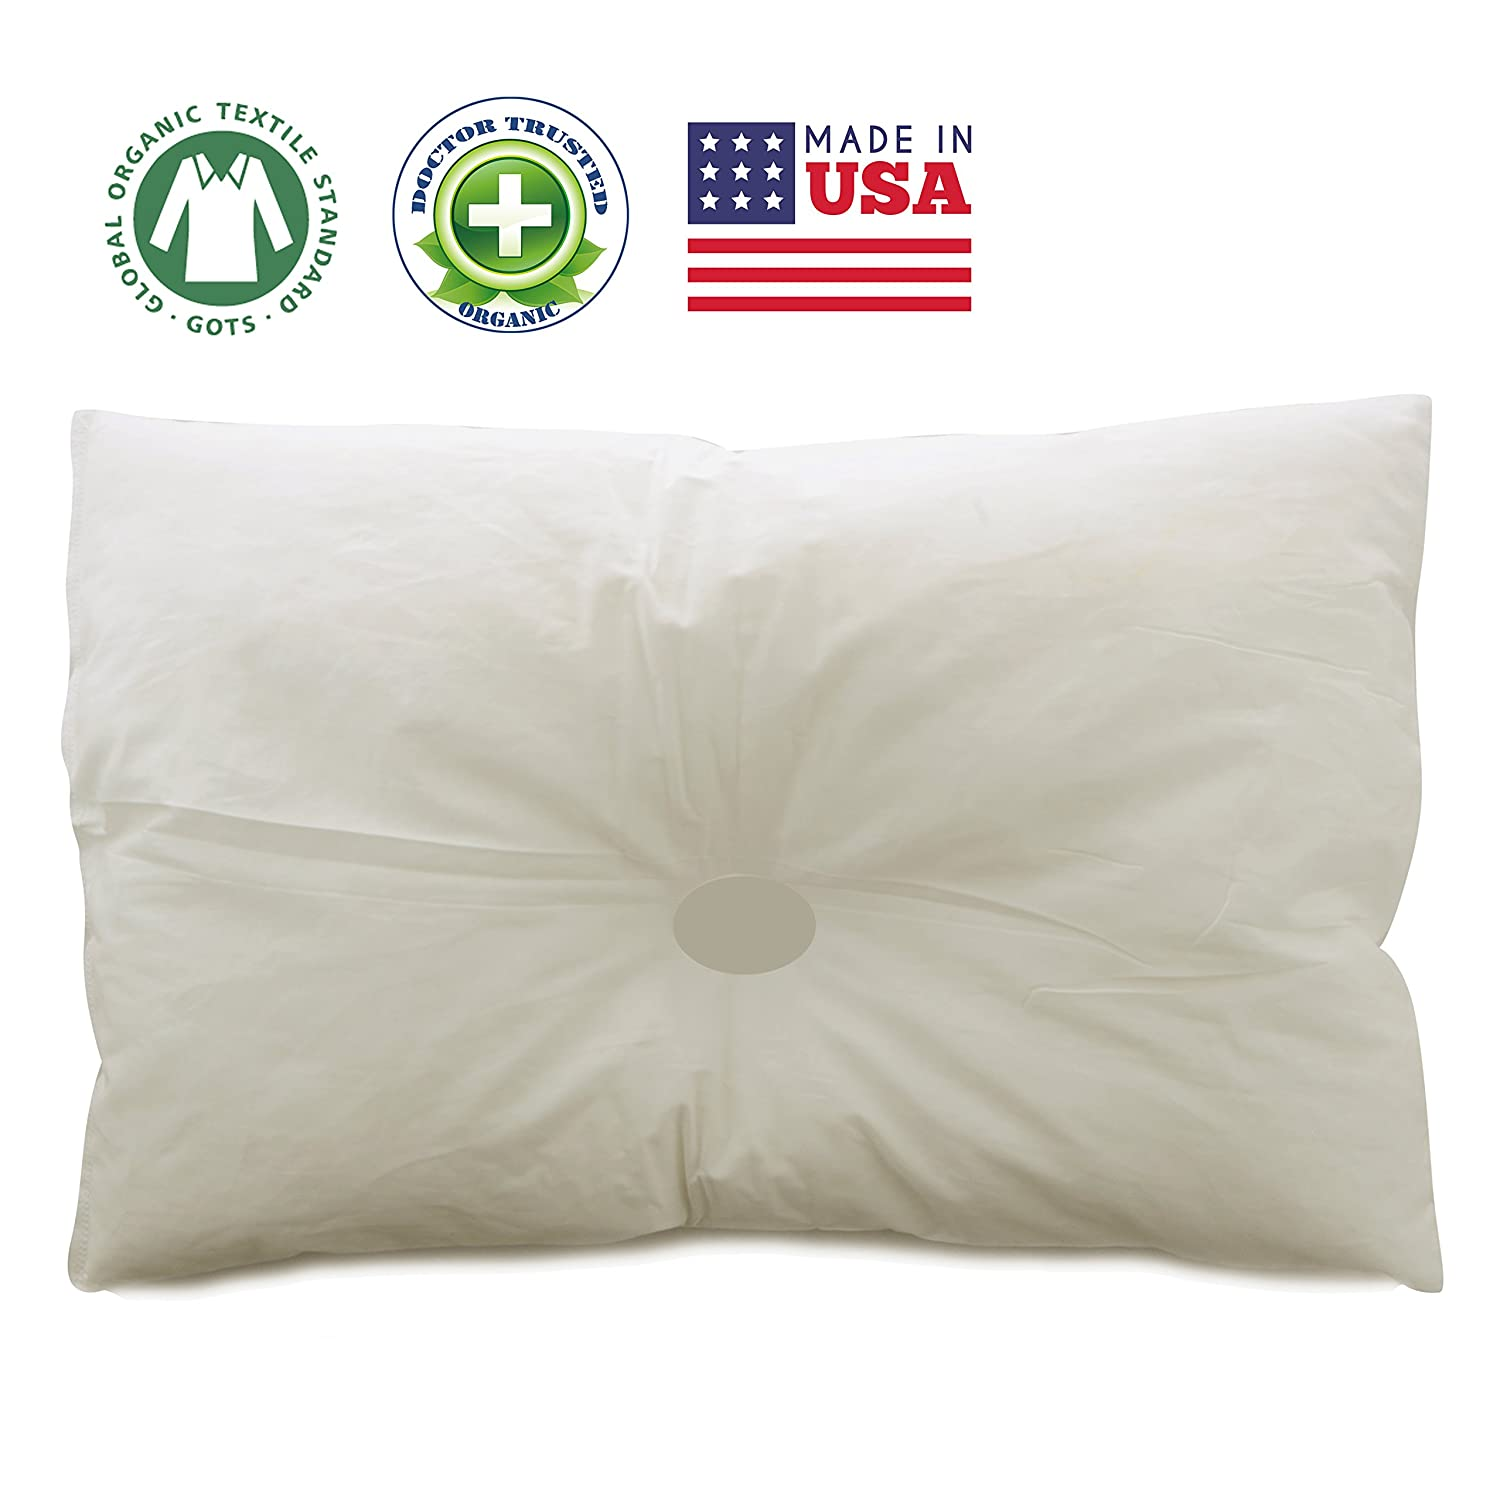 DorDor and GorGor ORGANIC Newborn Pillow 13 X 18 for baby 0 to 3 PLEASE WASH IT AFTER OPEN THE PACKAGE. IT WILL BE FLUFFY AFTER WASH. (White) DorDor & GorGor Pillow-Newborn-White